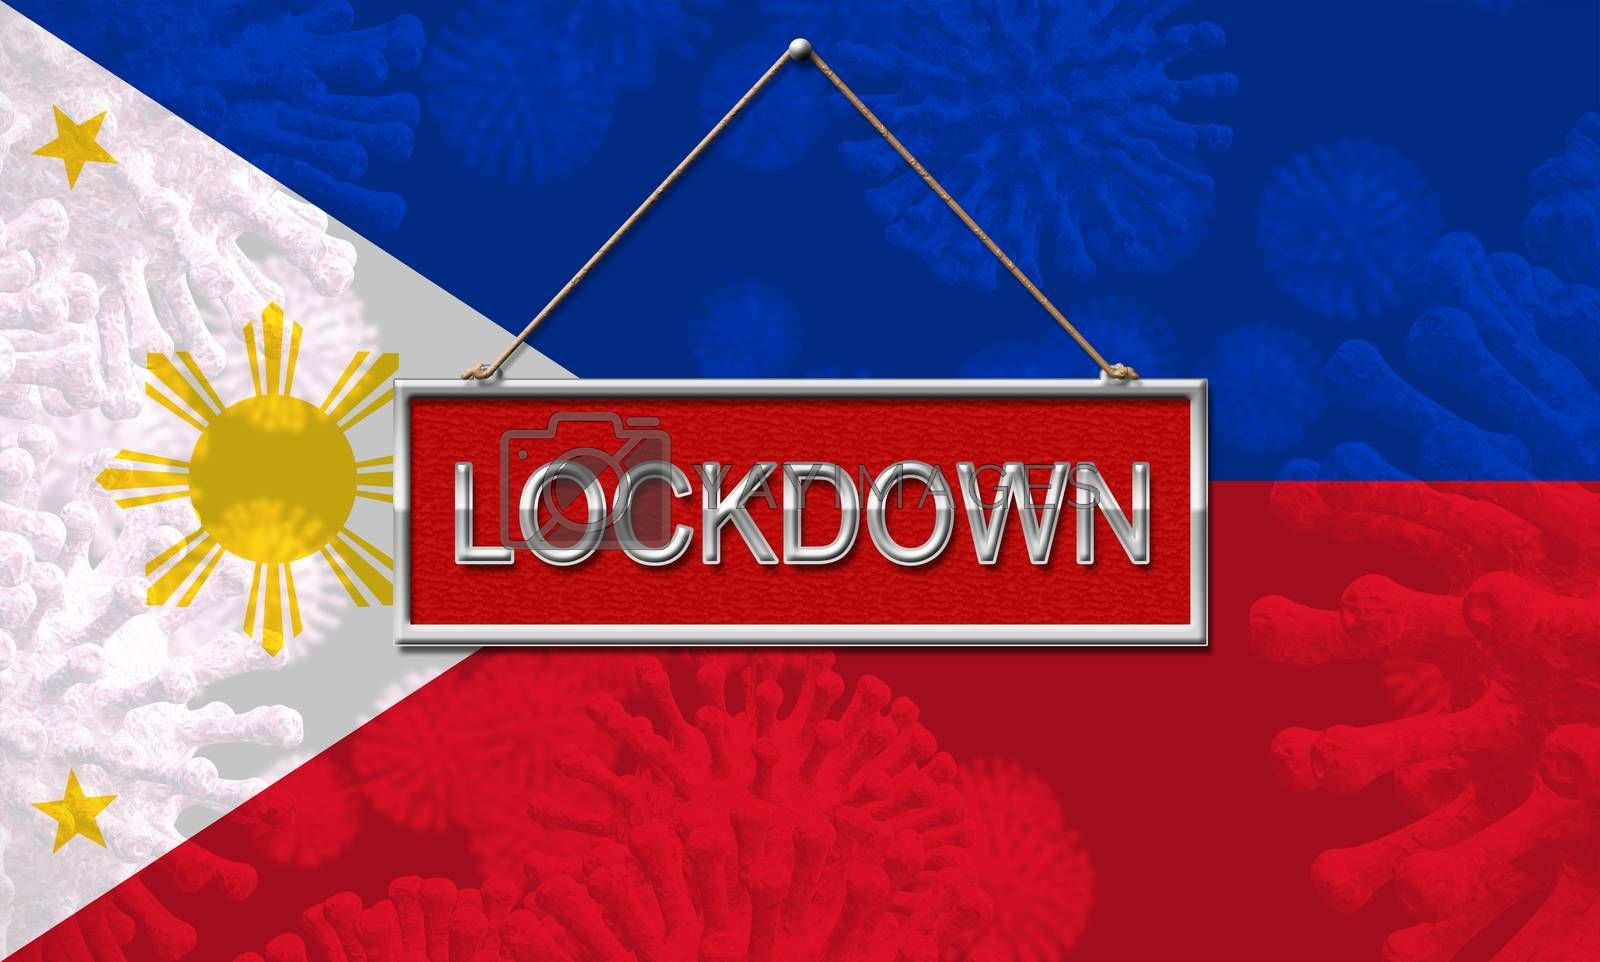 Philippines lockdown or shutdown preventing coronavirus epidemic by stuartmiles